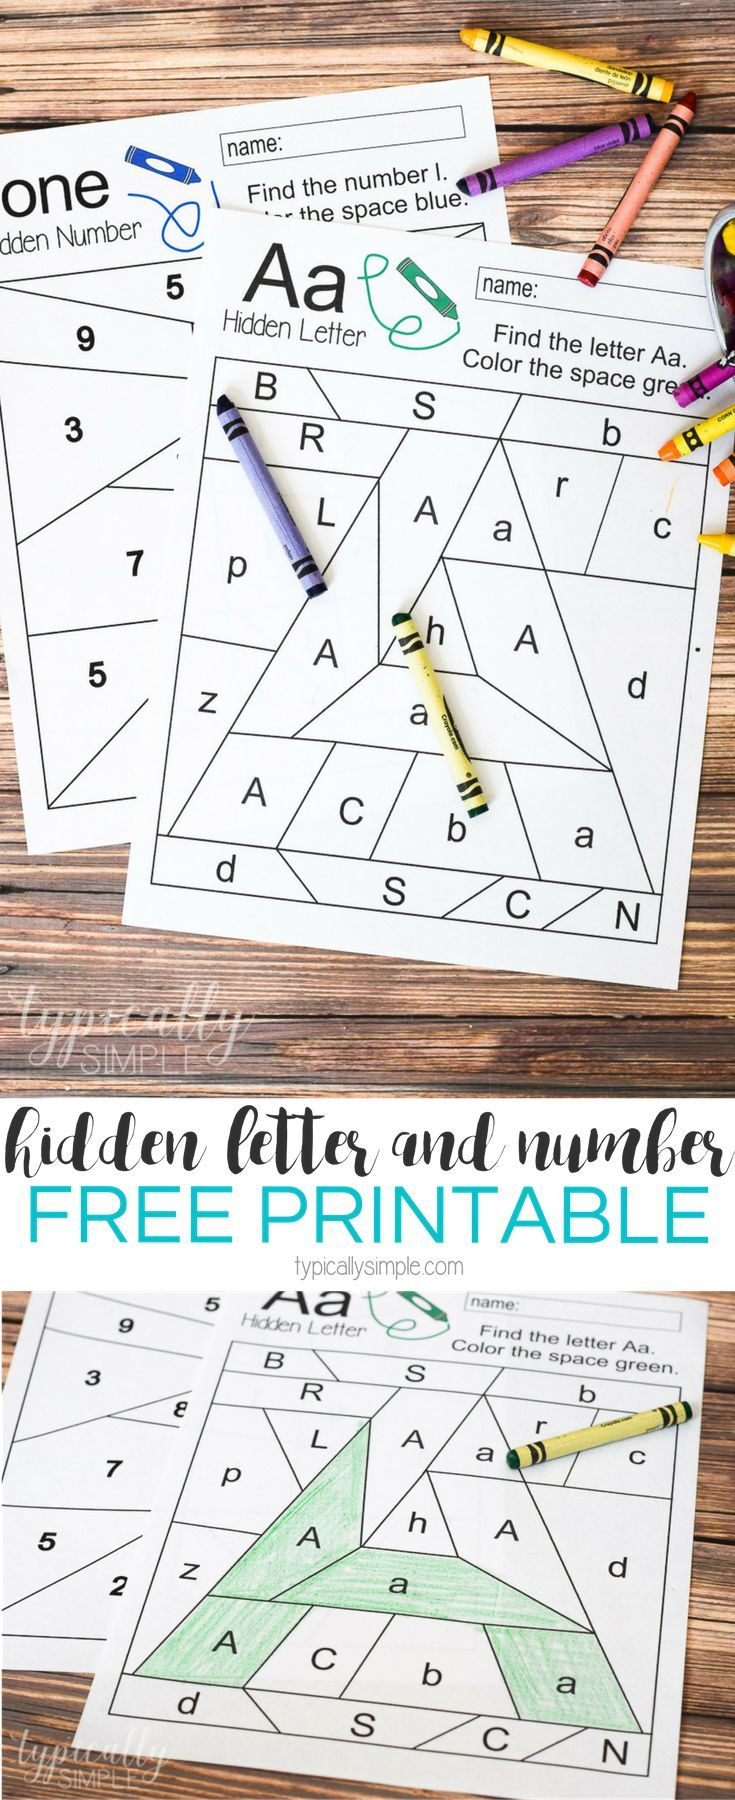 Free printable worksheets to practice letter and number recognition. Grab a  few crayons and start